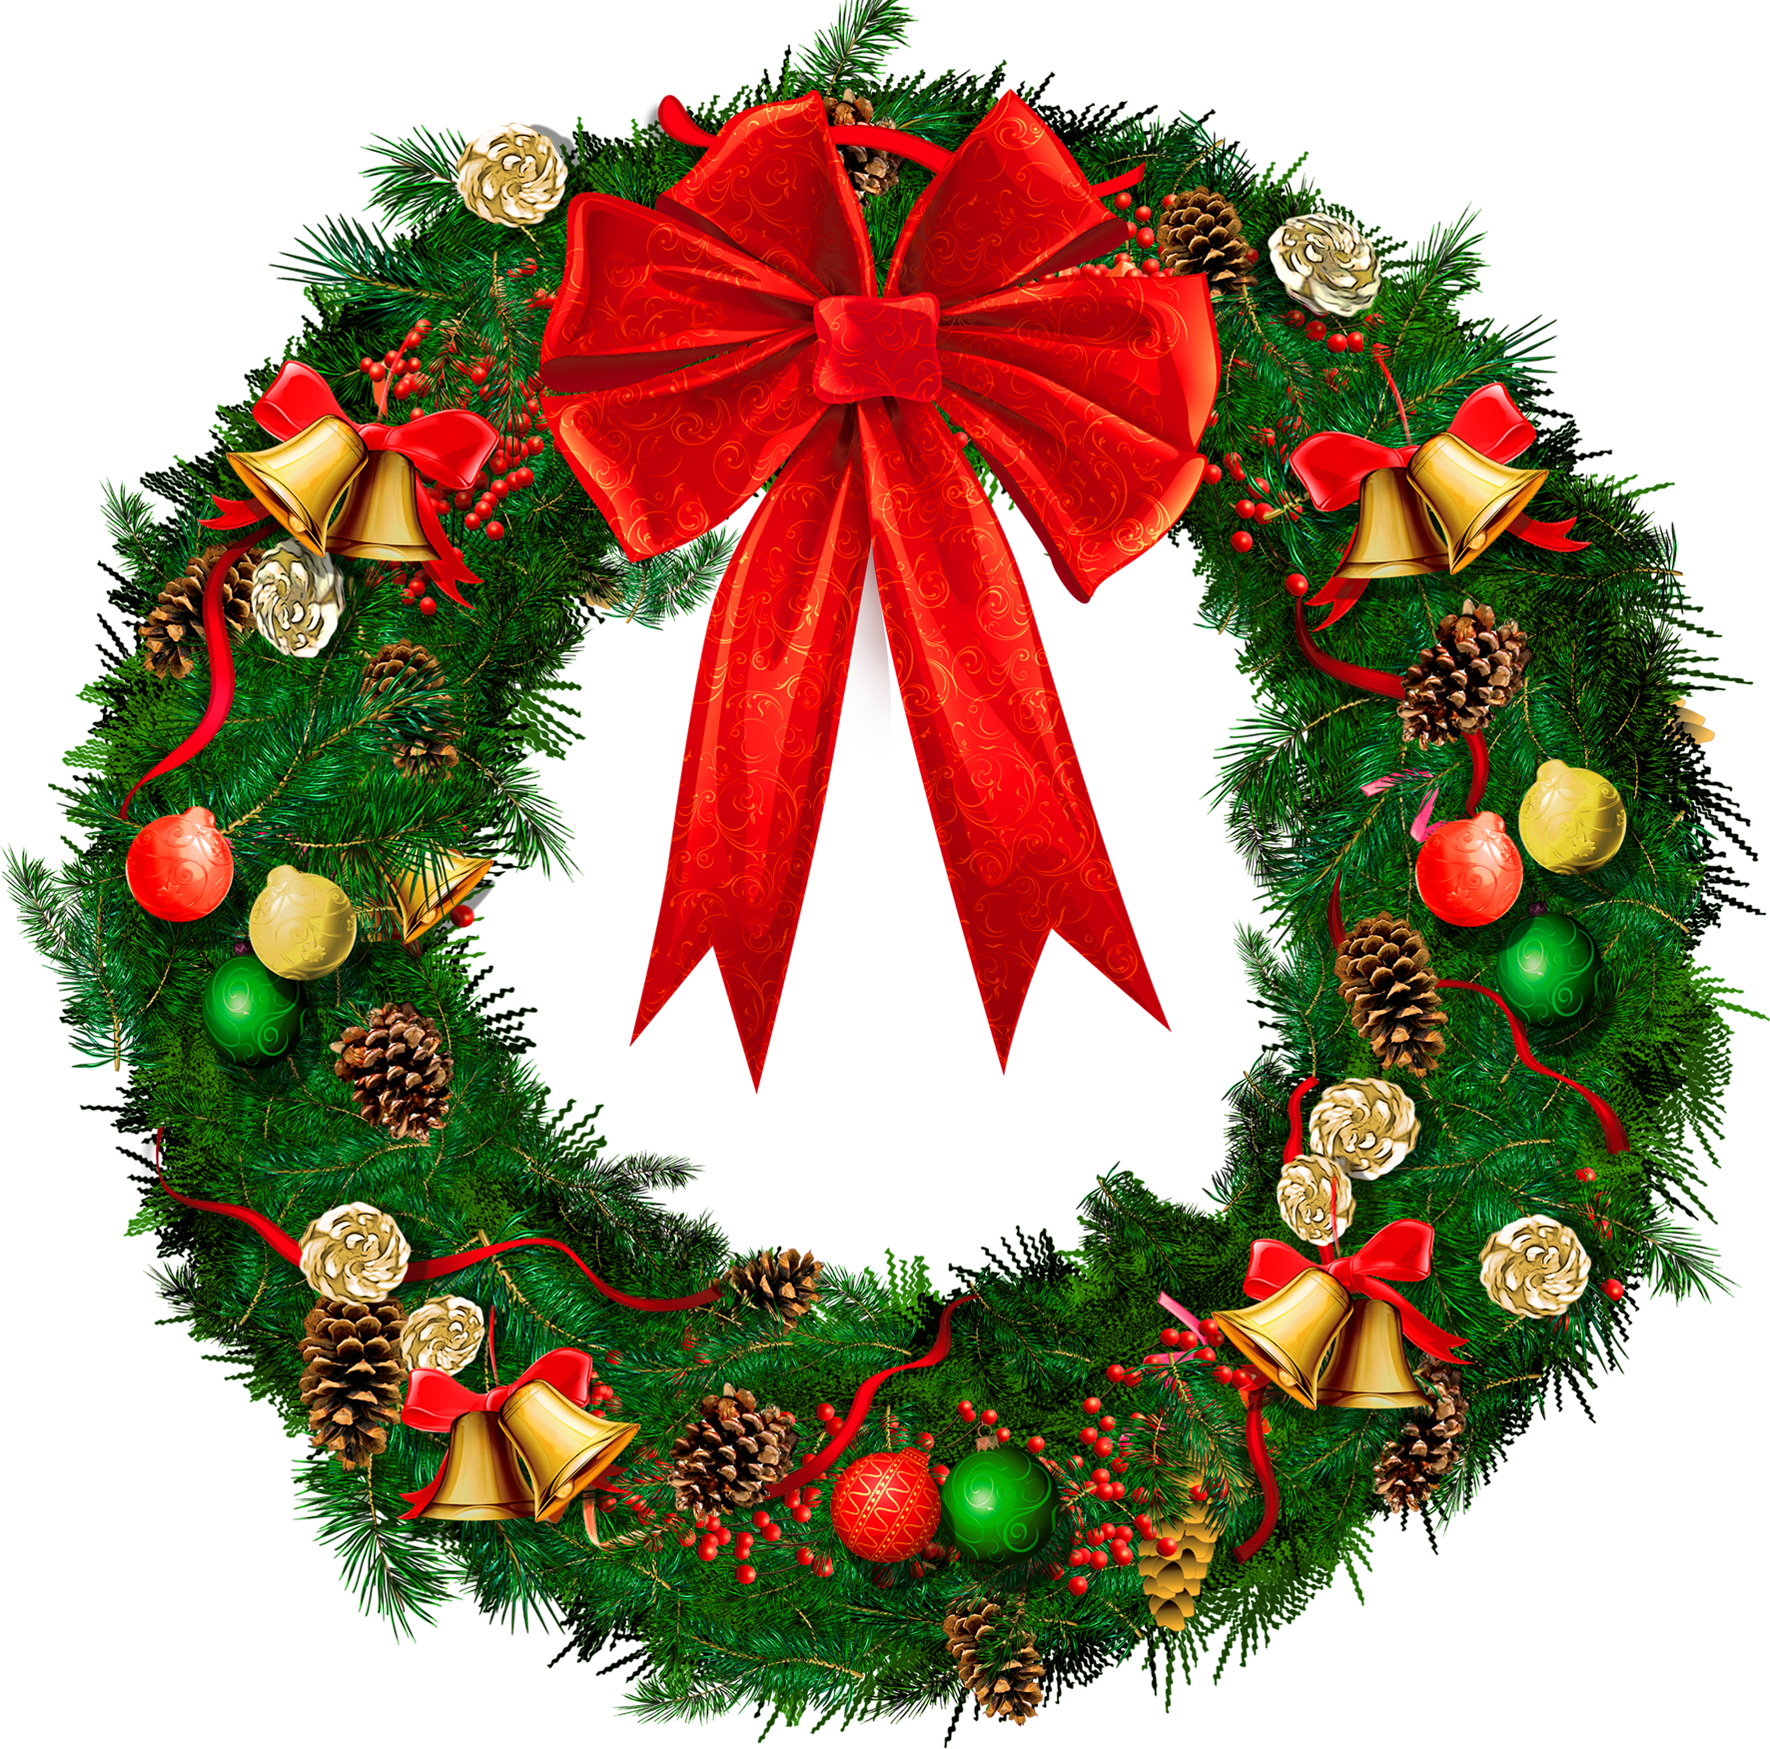 13 Holiday Wreath Clip Art Free Cliparts That You Can Download To You